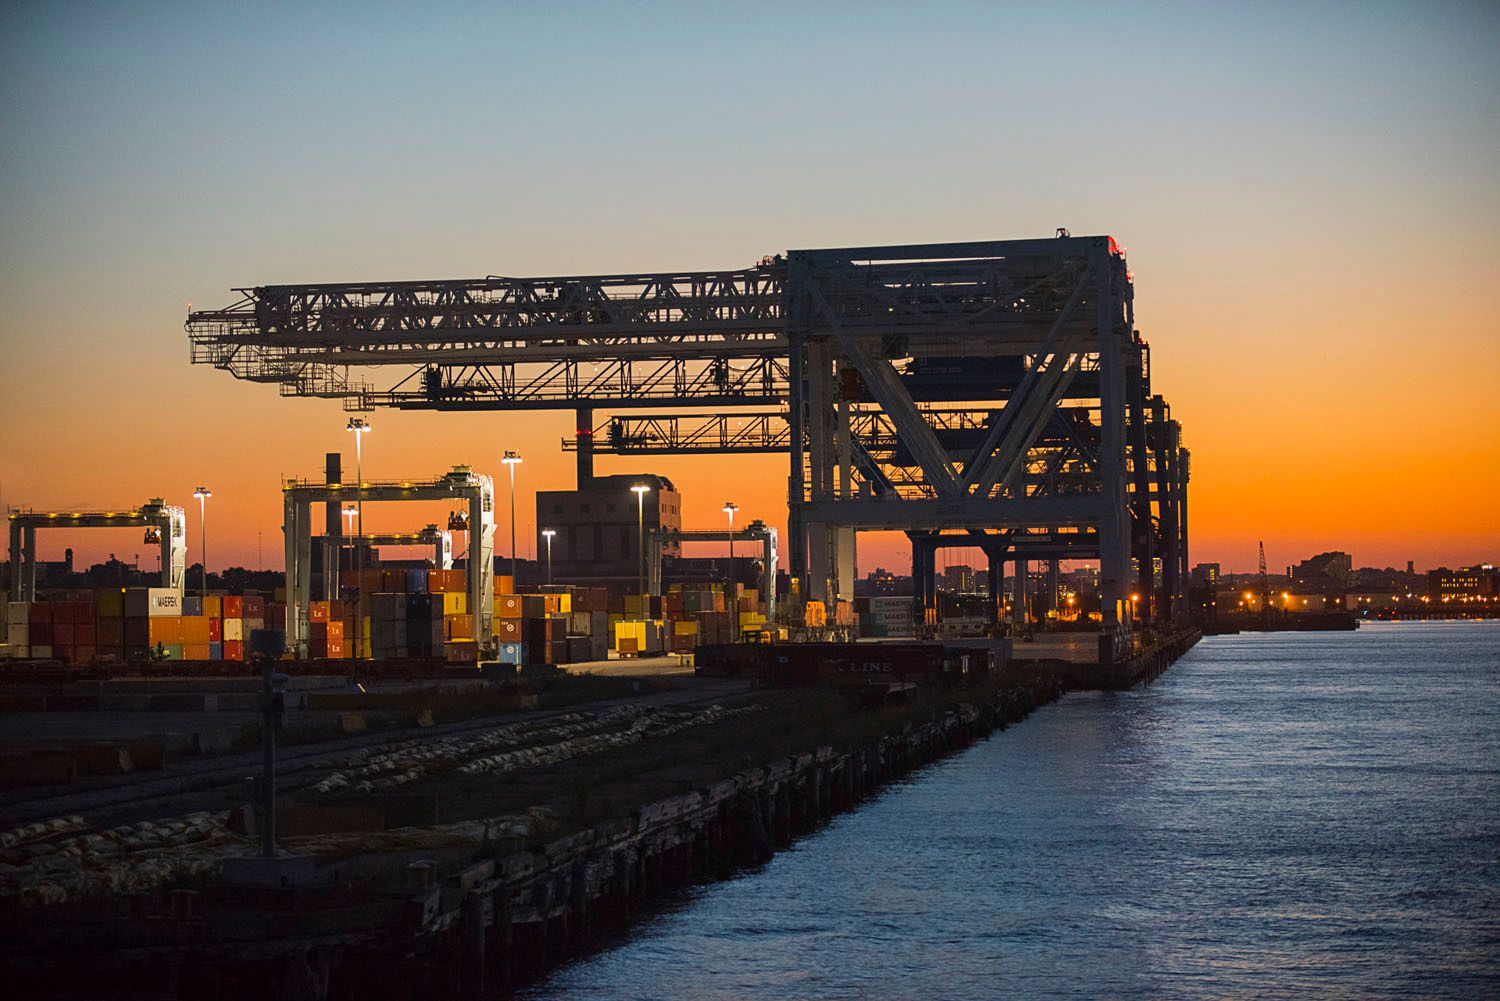 Conley Container Terminal at sunset